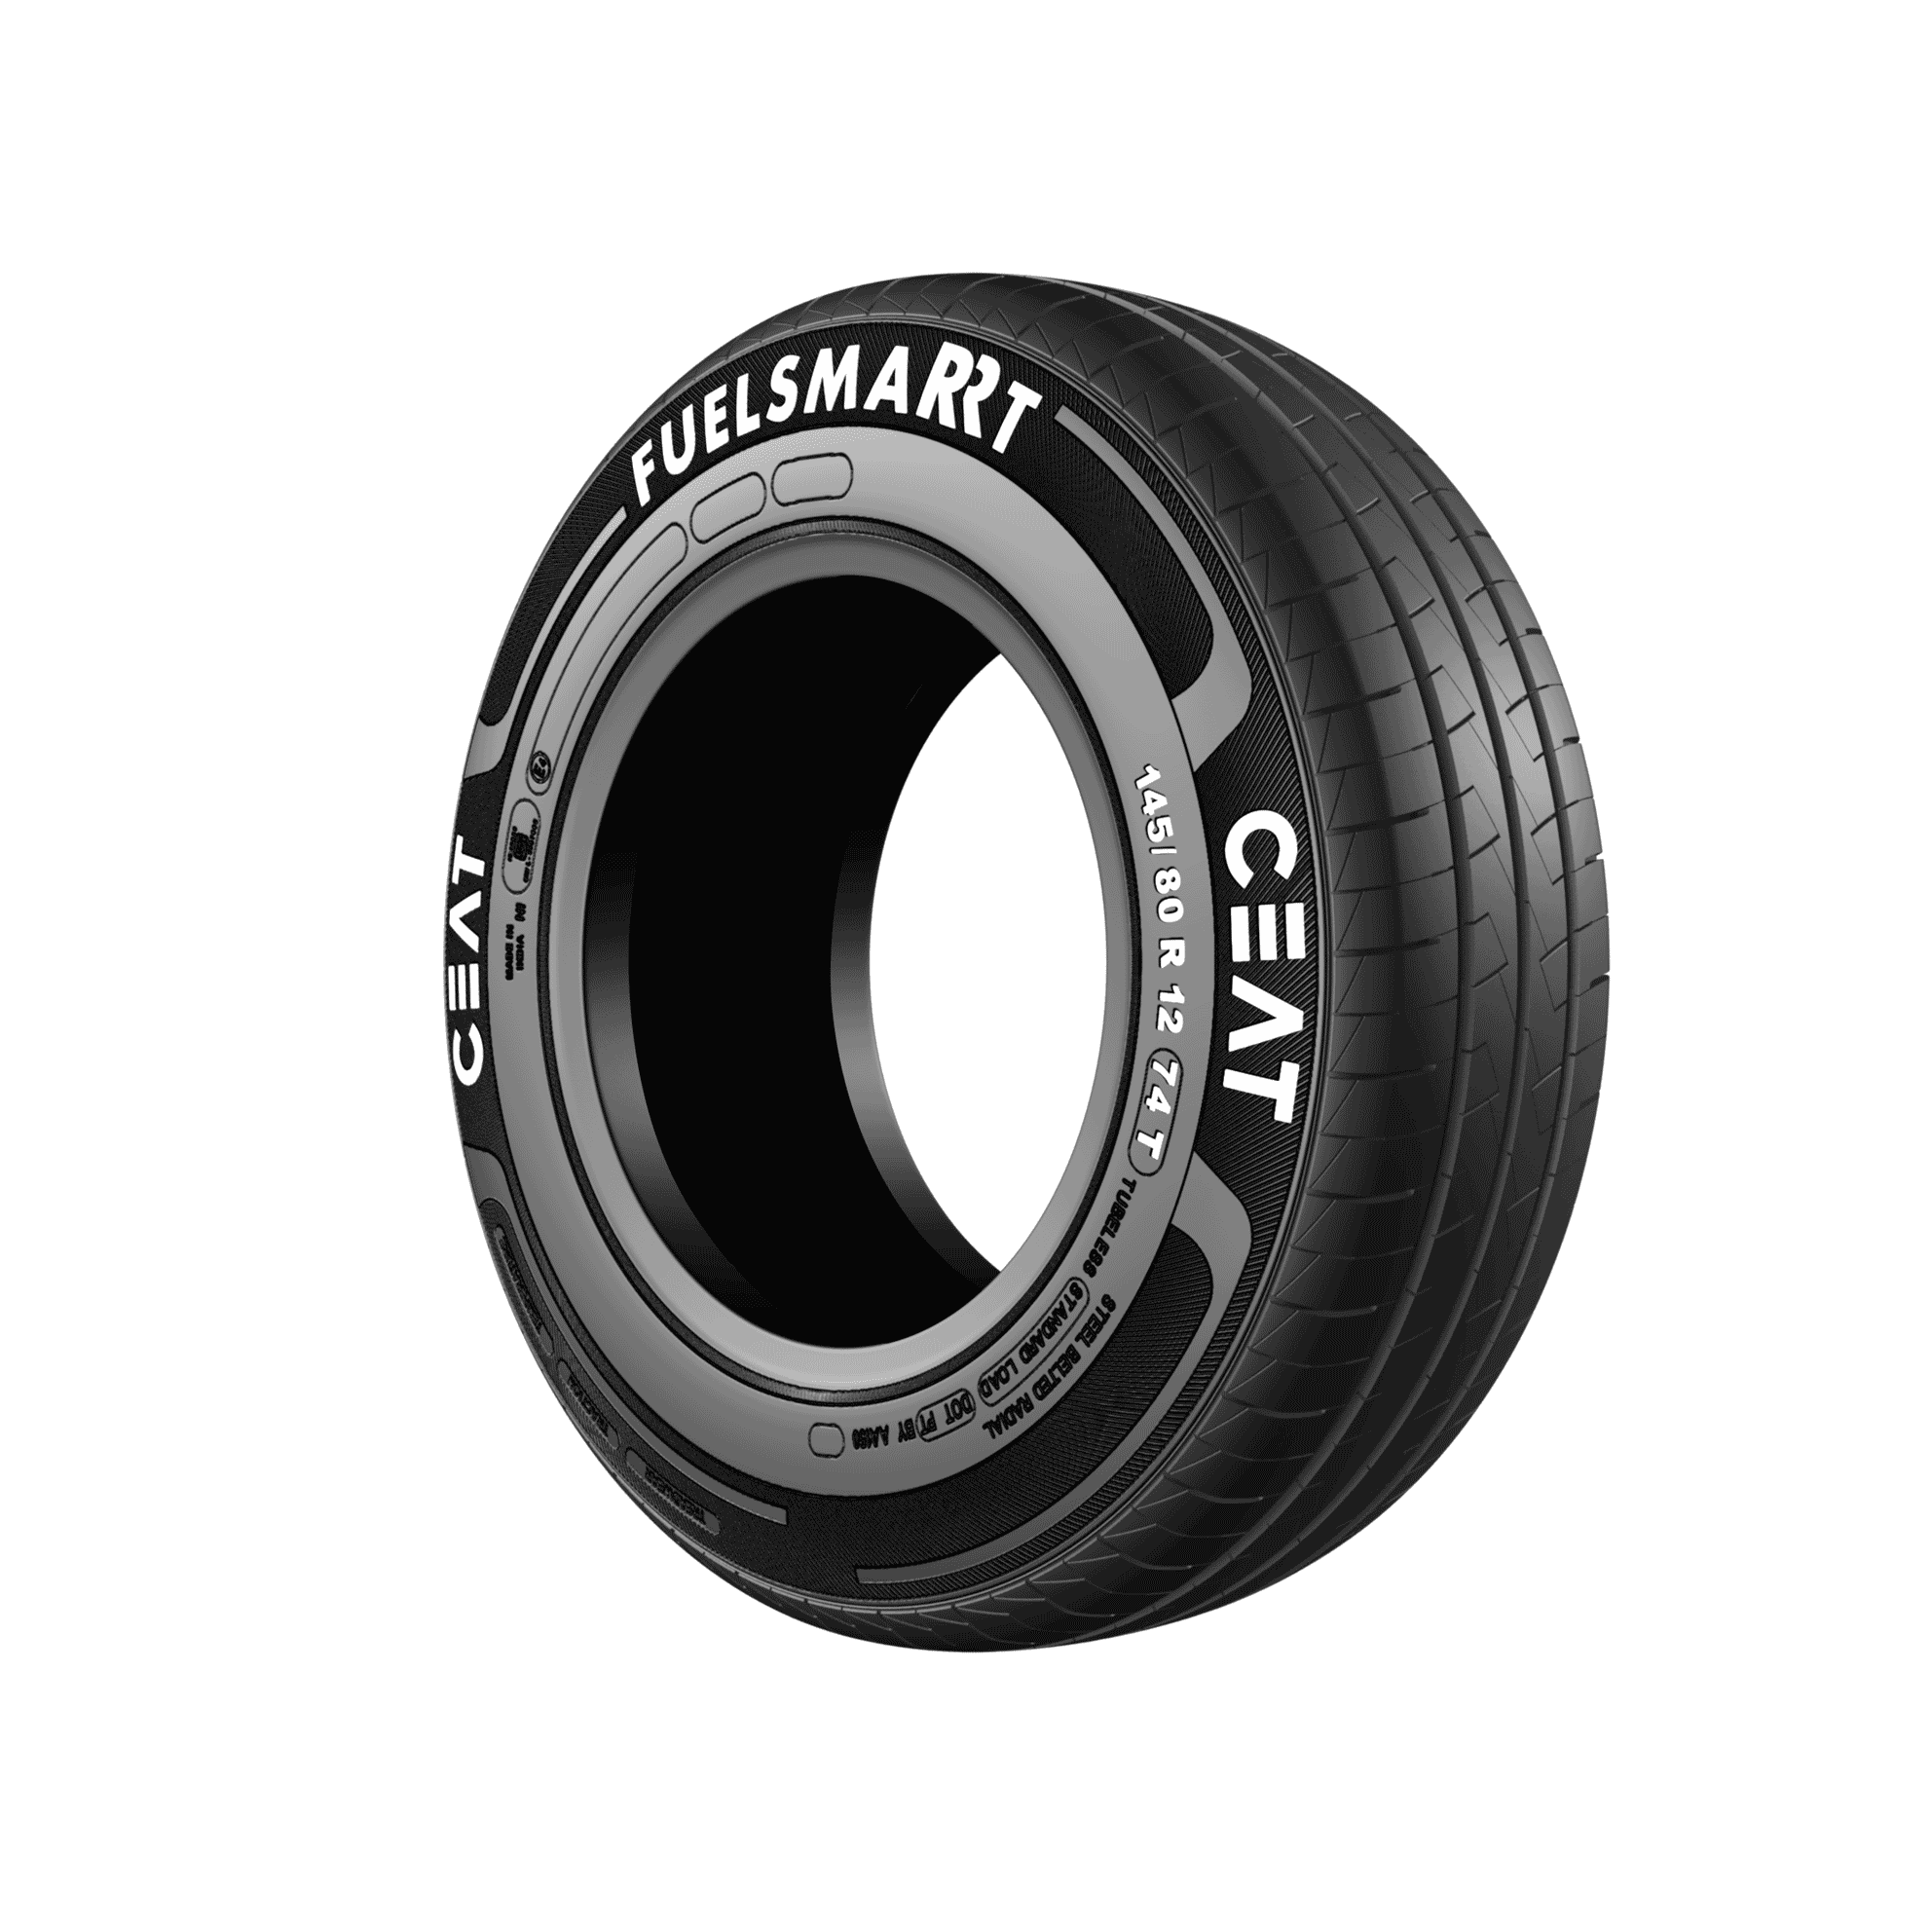 CEAT FUEL SMARRT 195/55 R 16 Tubeless 87 H Car Tyre